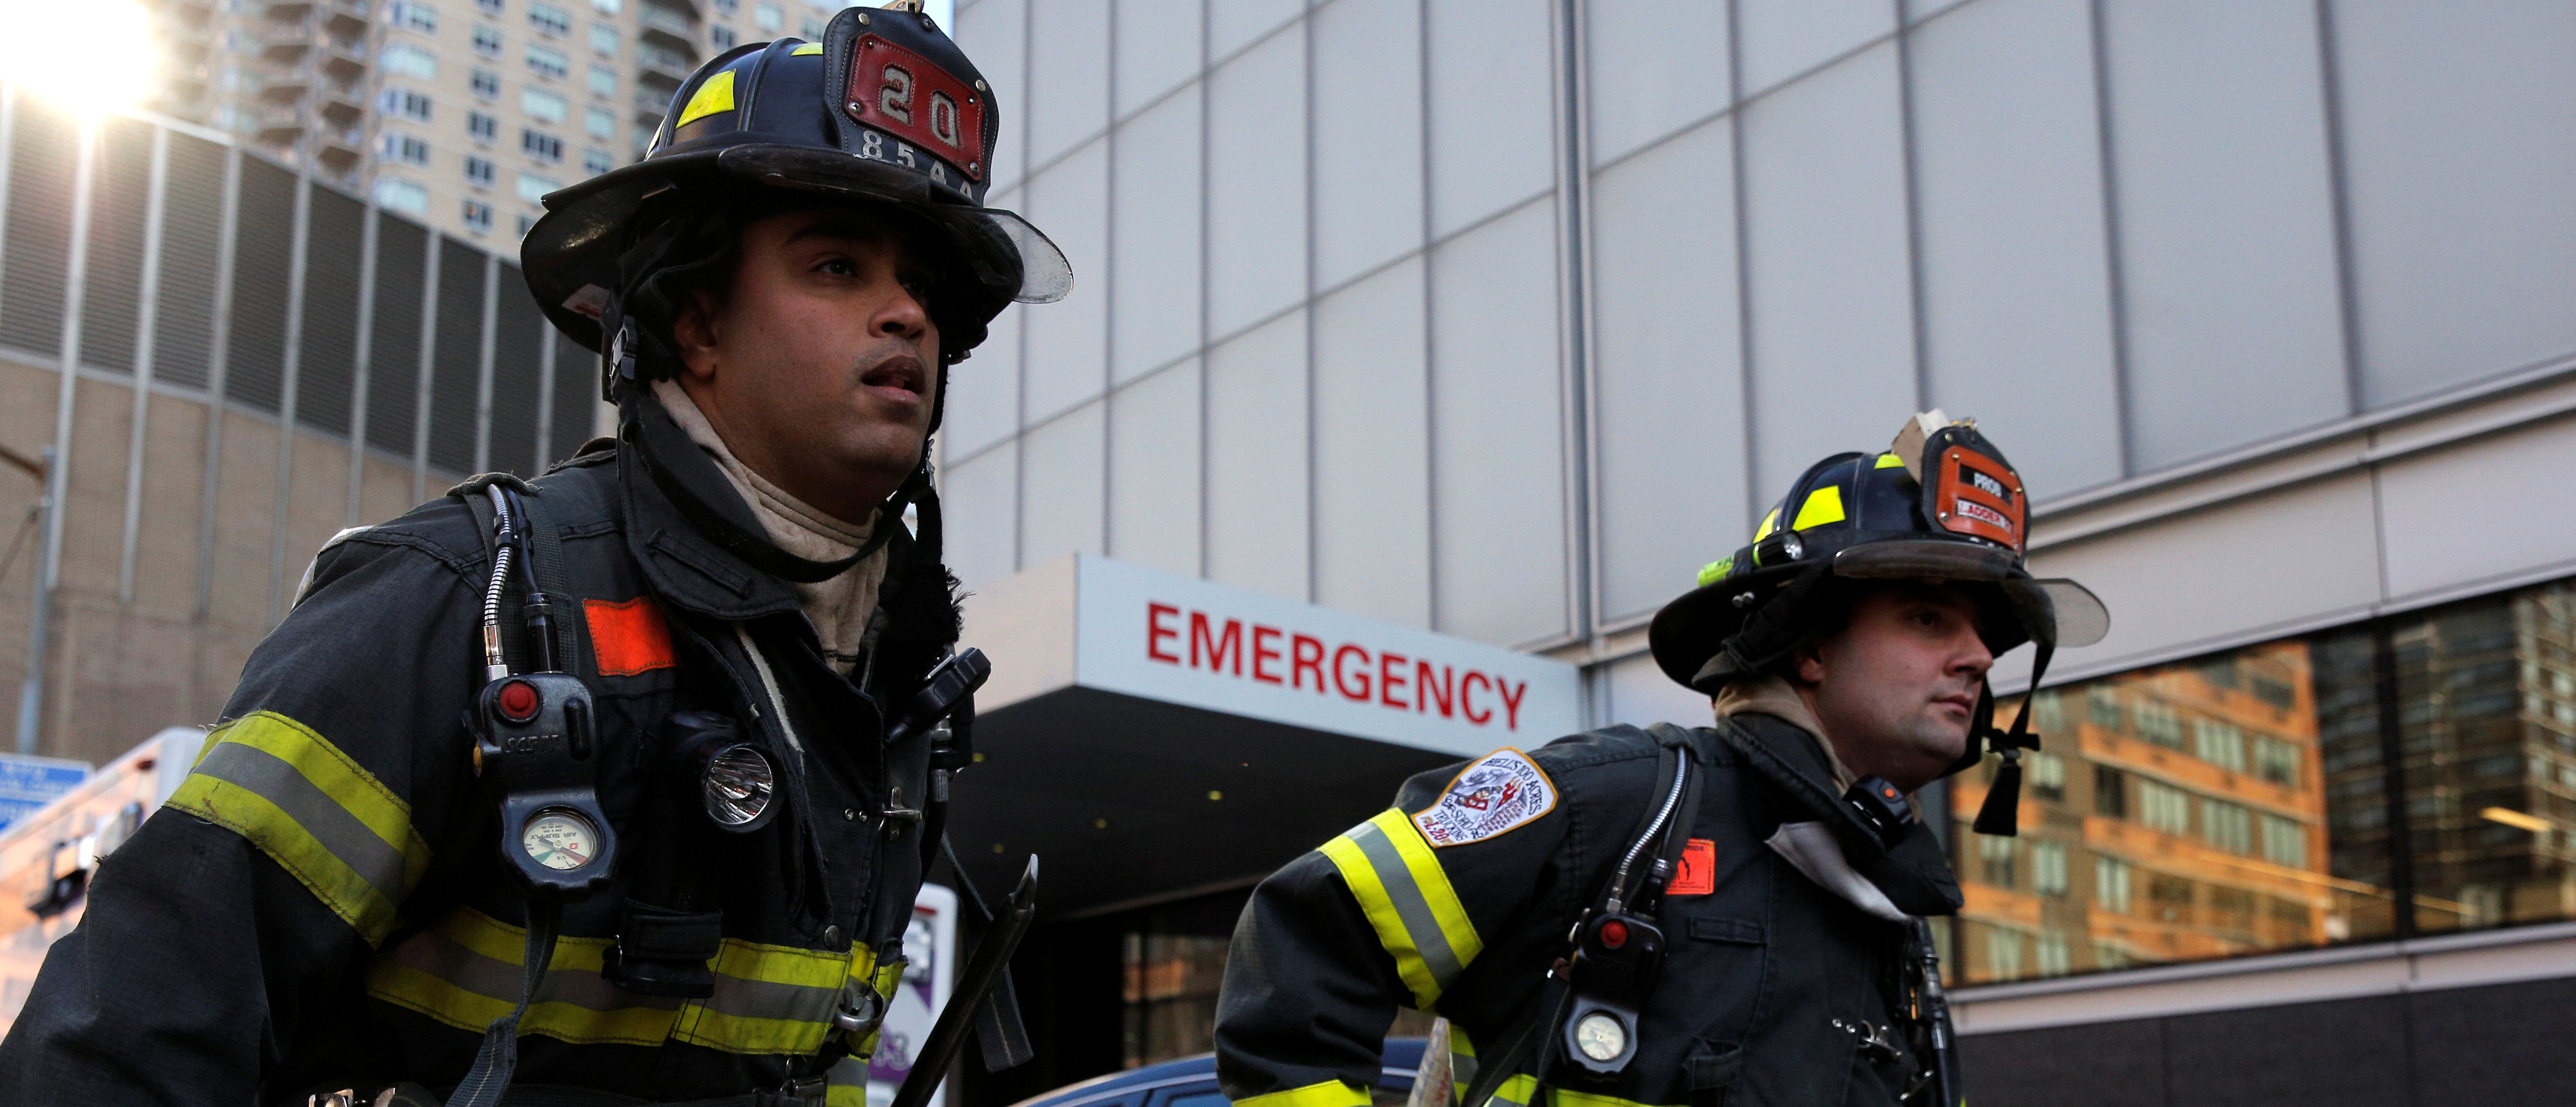 New York City firefighters (FDNY) at the scene of a fire at NYU Medical Center in Manhattan, New York City, U.S., December 14, 2016. REUTERS/Brendan McDermid